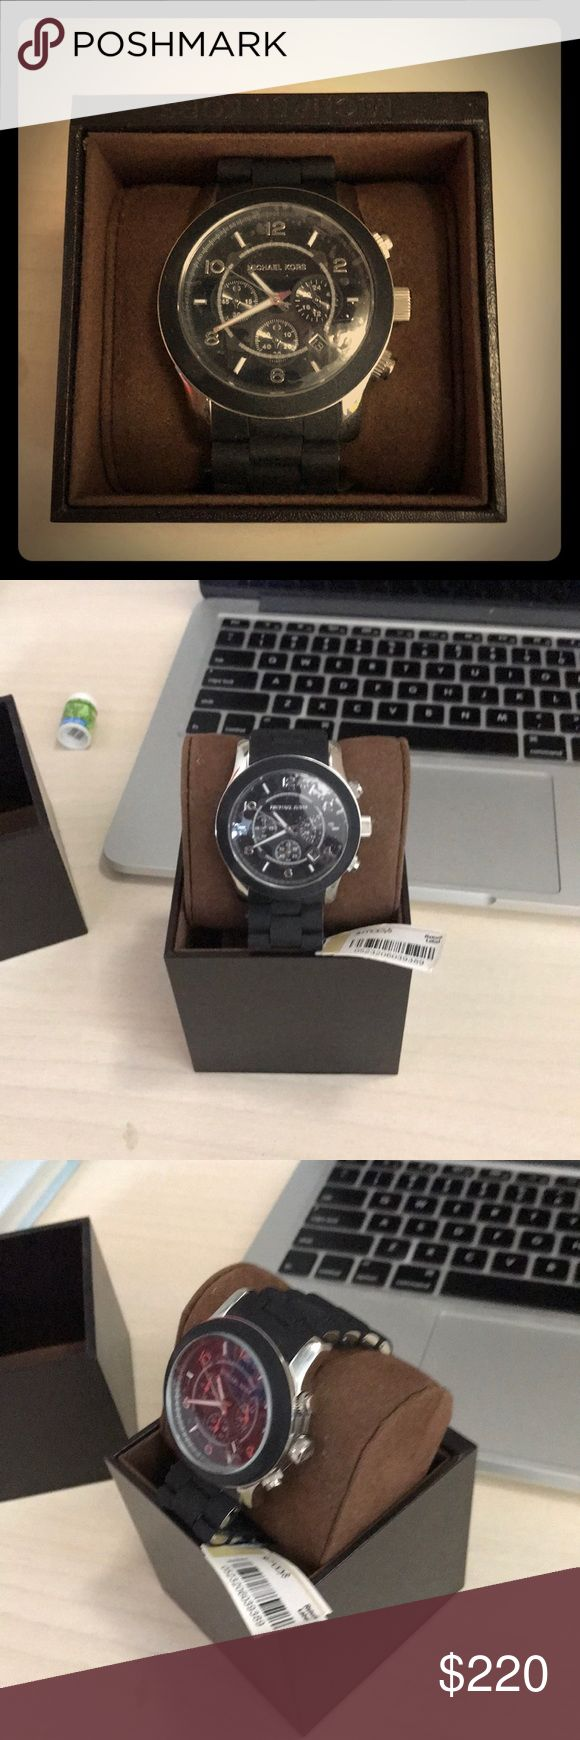 Brand new Michael Kors watch Brand new, tags and plastic covering still on, has not been worn or fitted. Details for 250 asking 220. KORS Michael Kors Accessories Watches